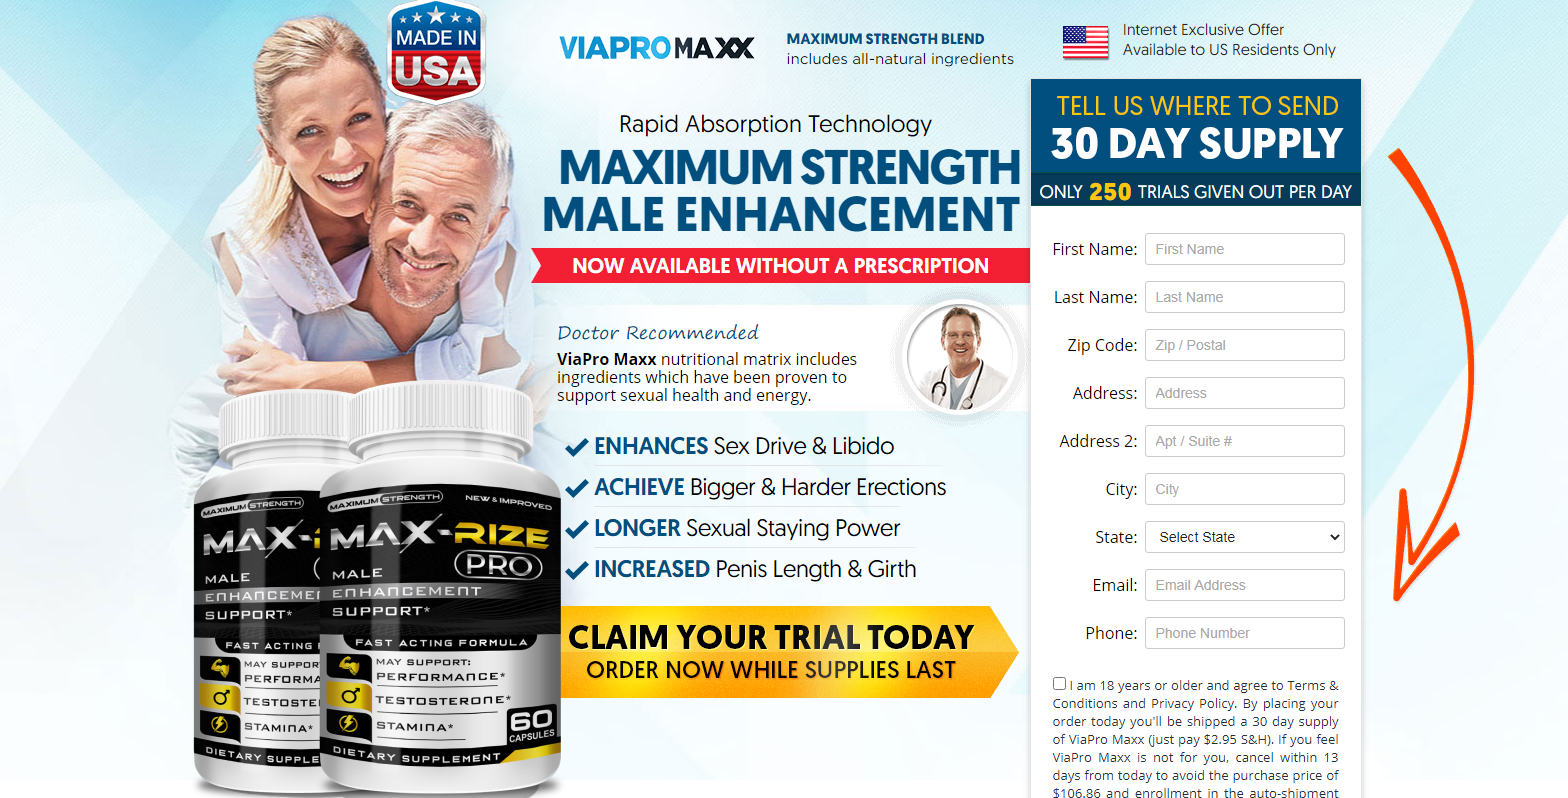 Maxrize Pro - How it Uses - What is Max Rize Pro Male Enhancement?